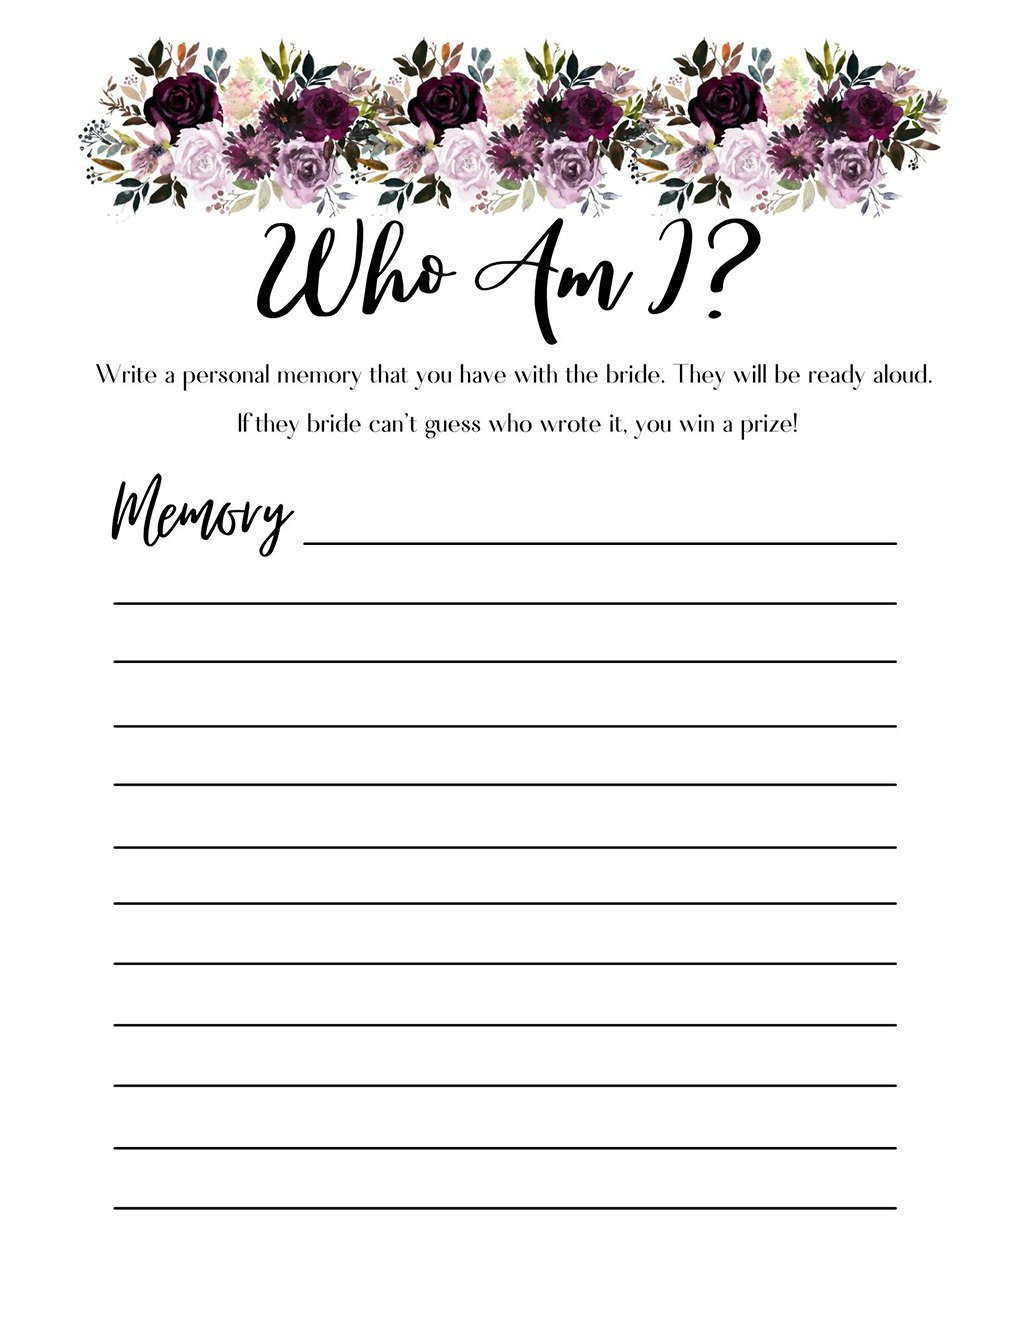 A printable for the game Who Am I, which is a game that you play at a bridal shower